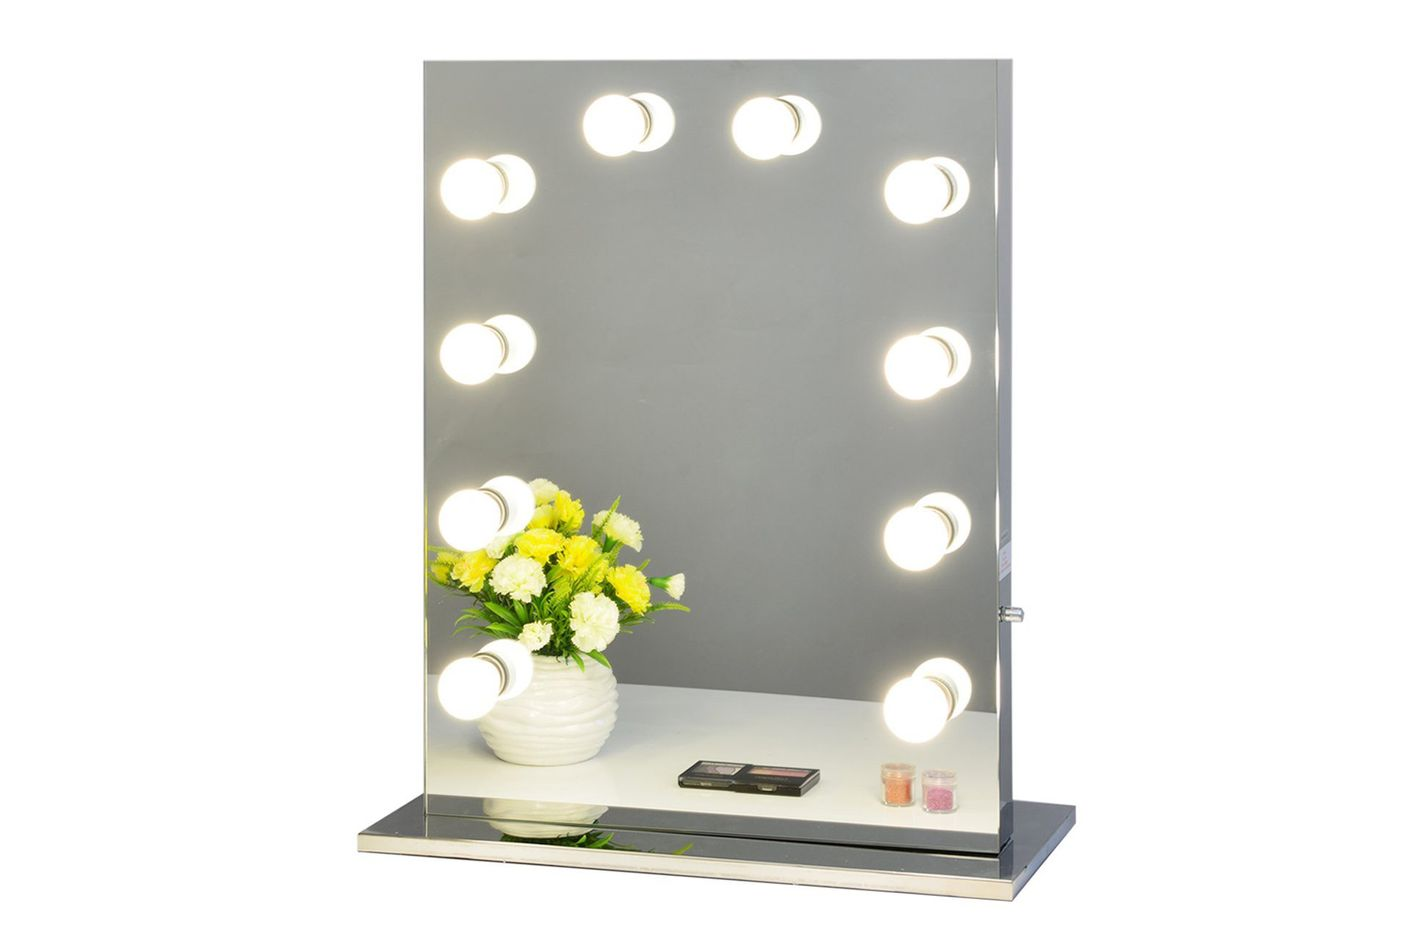 11 Best Vanity Makeup Mirrors Lights 2017: Lighted Mirrors